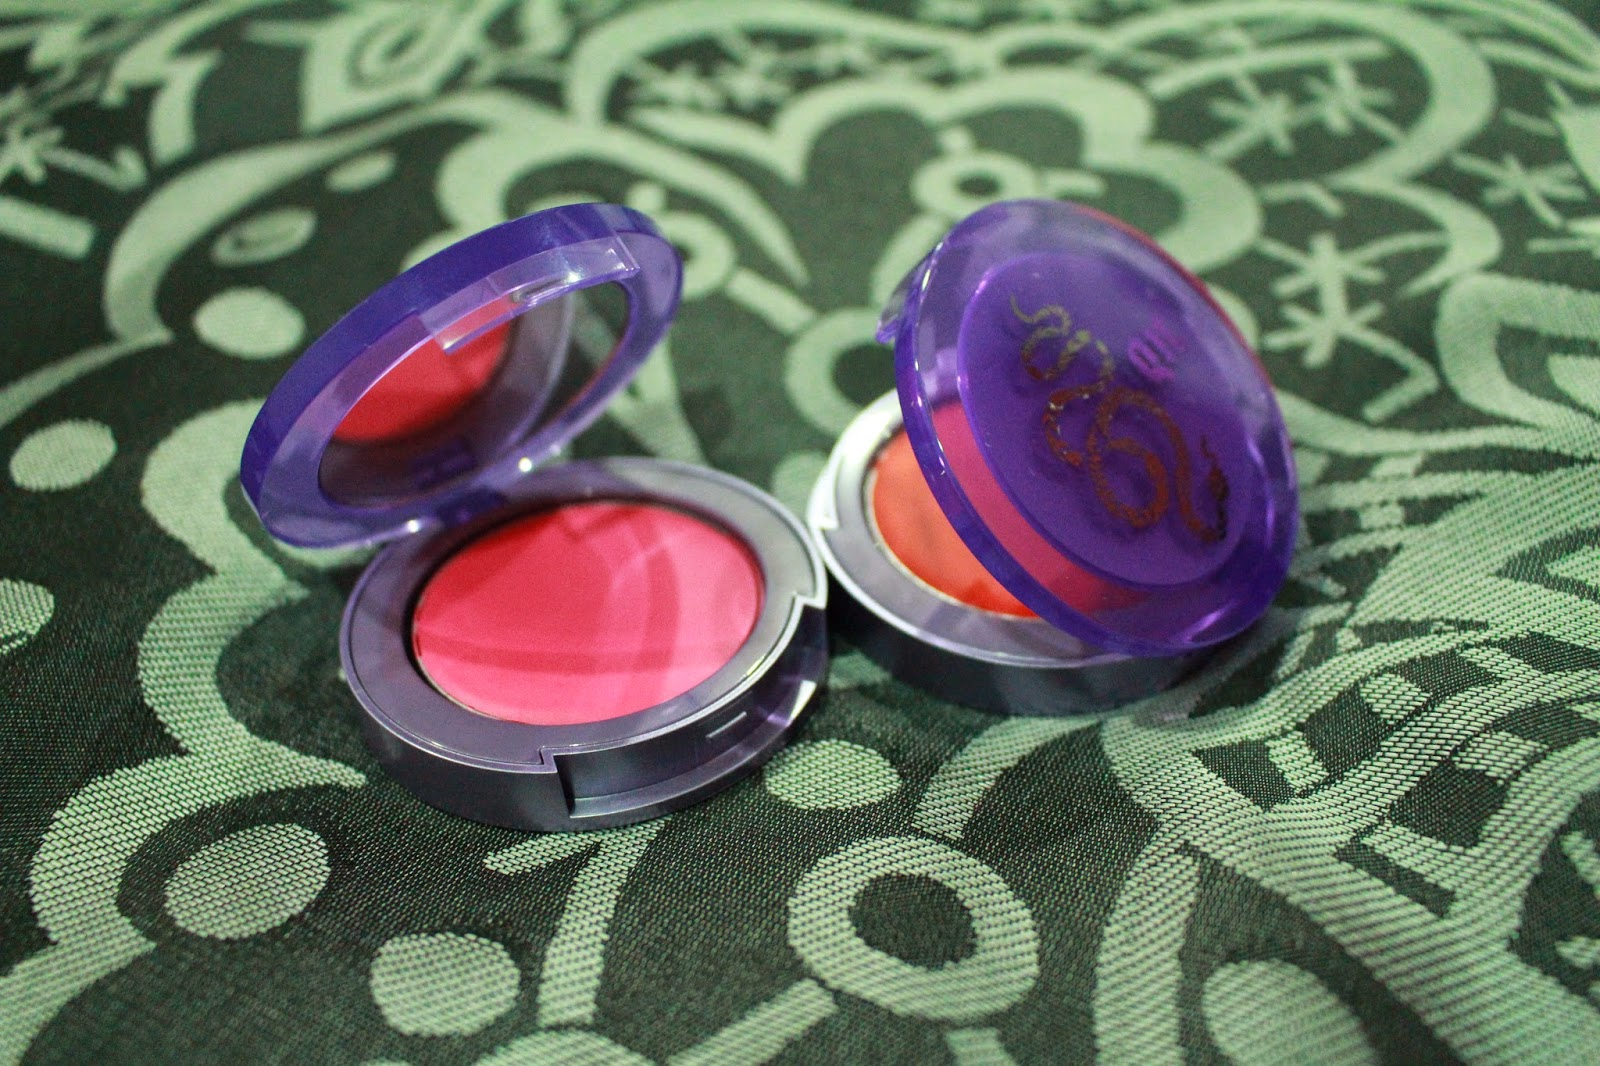 Urban Decay Afterglow Glide On Cheek Tint in Bang and Crush